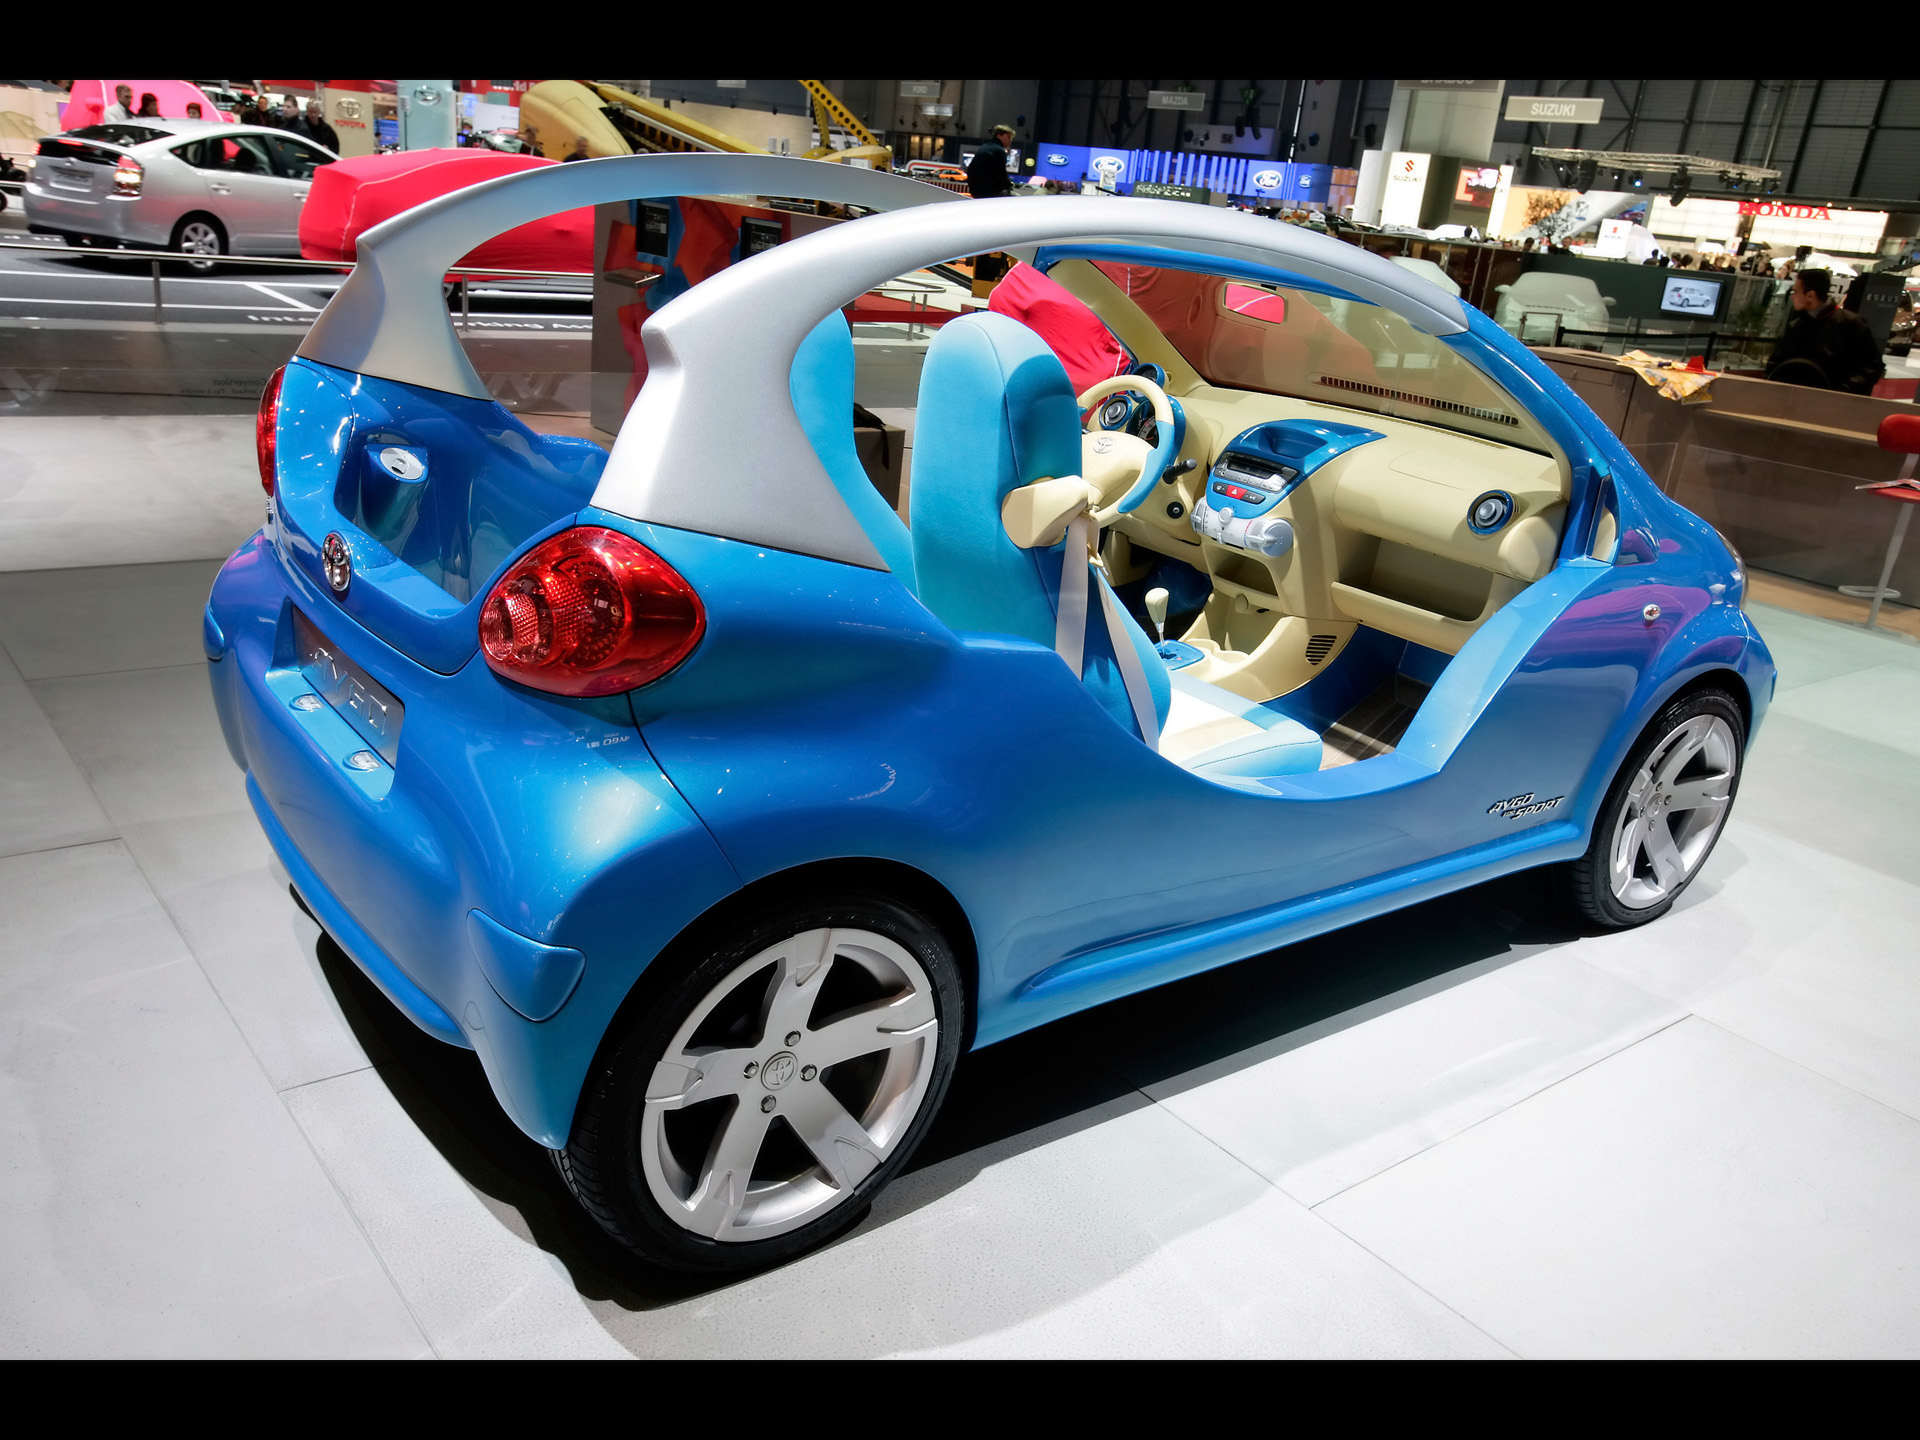 toyota aygo blue technical details history photos on better parts ltd. Black Bedroom Furniture Sets. Home Design Ideas